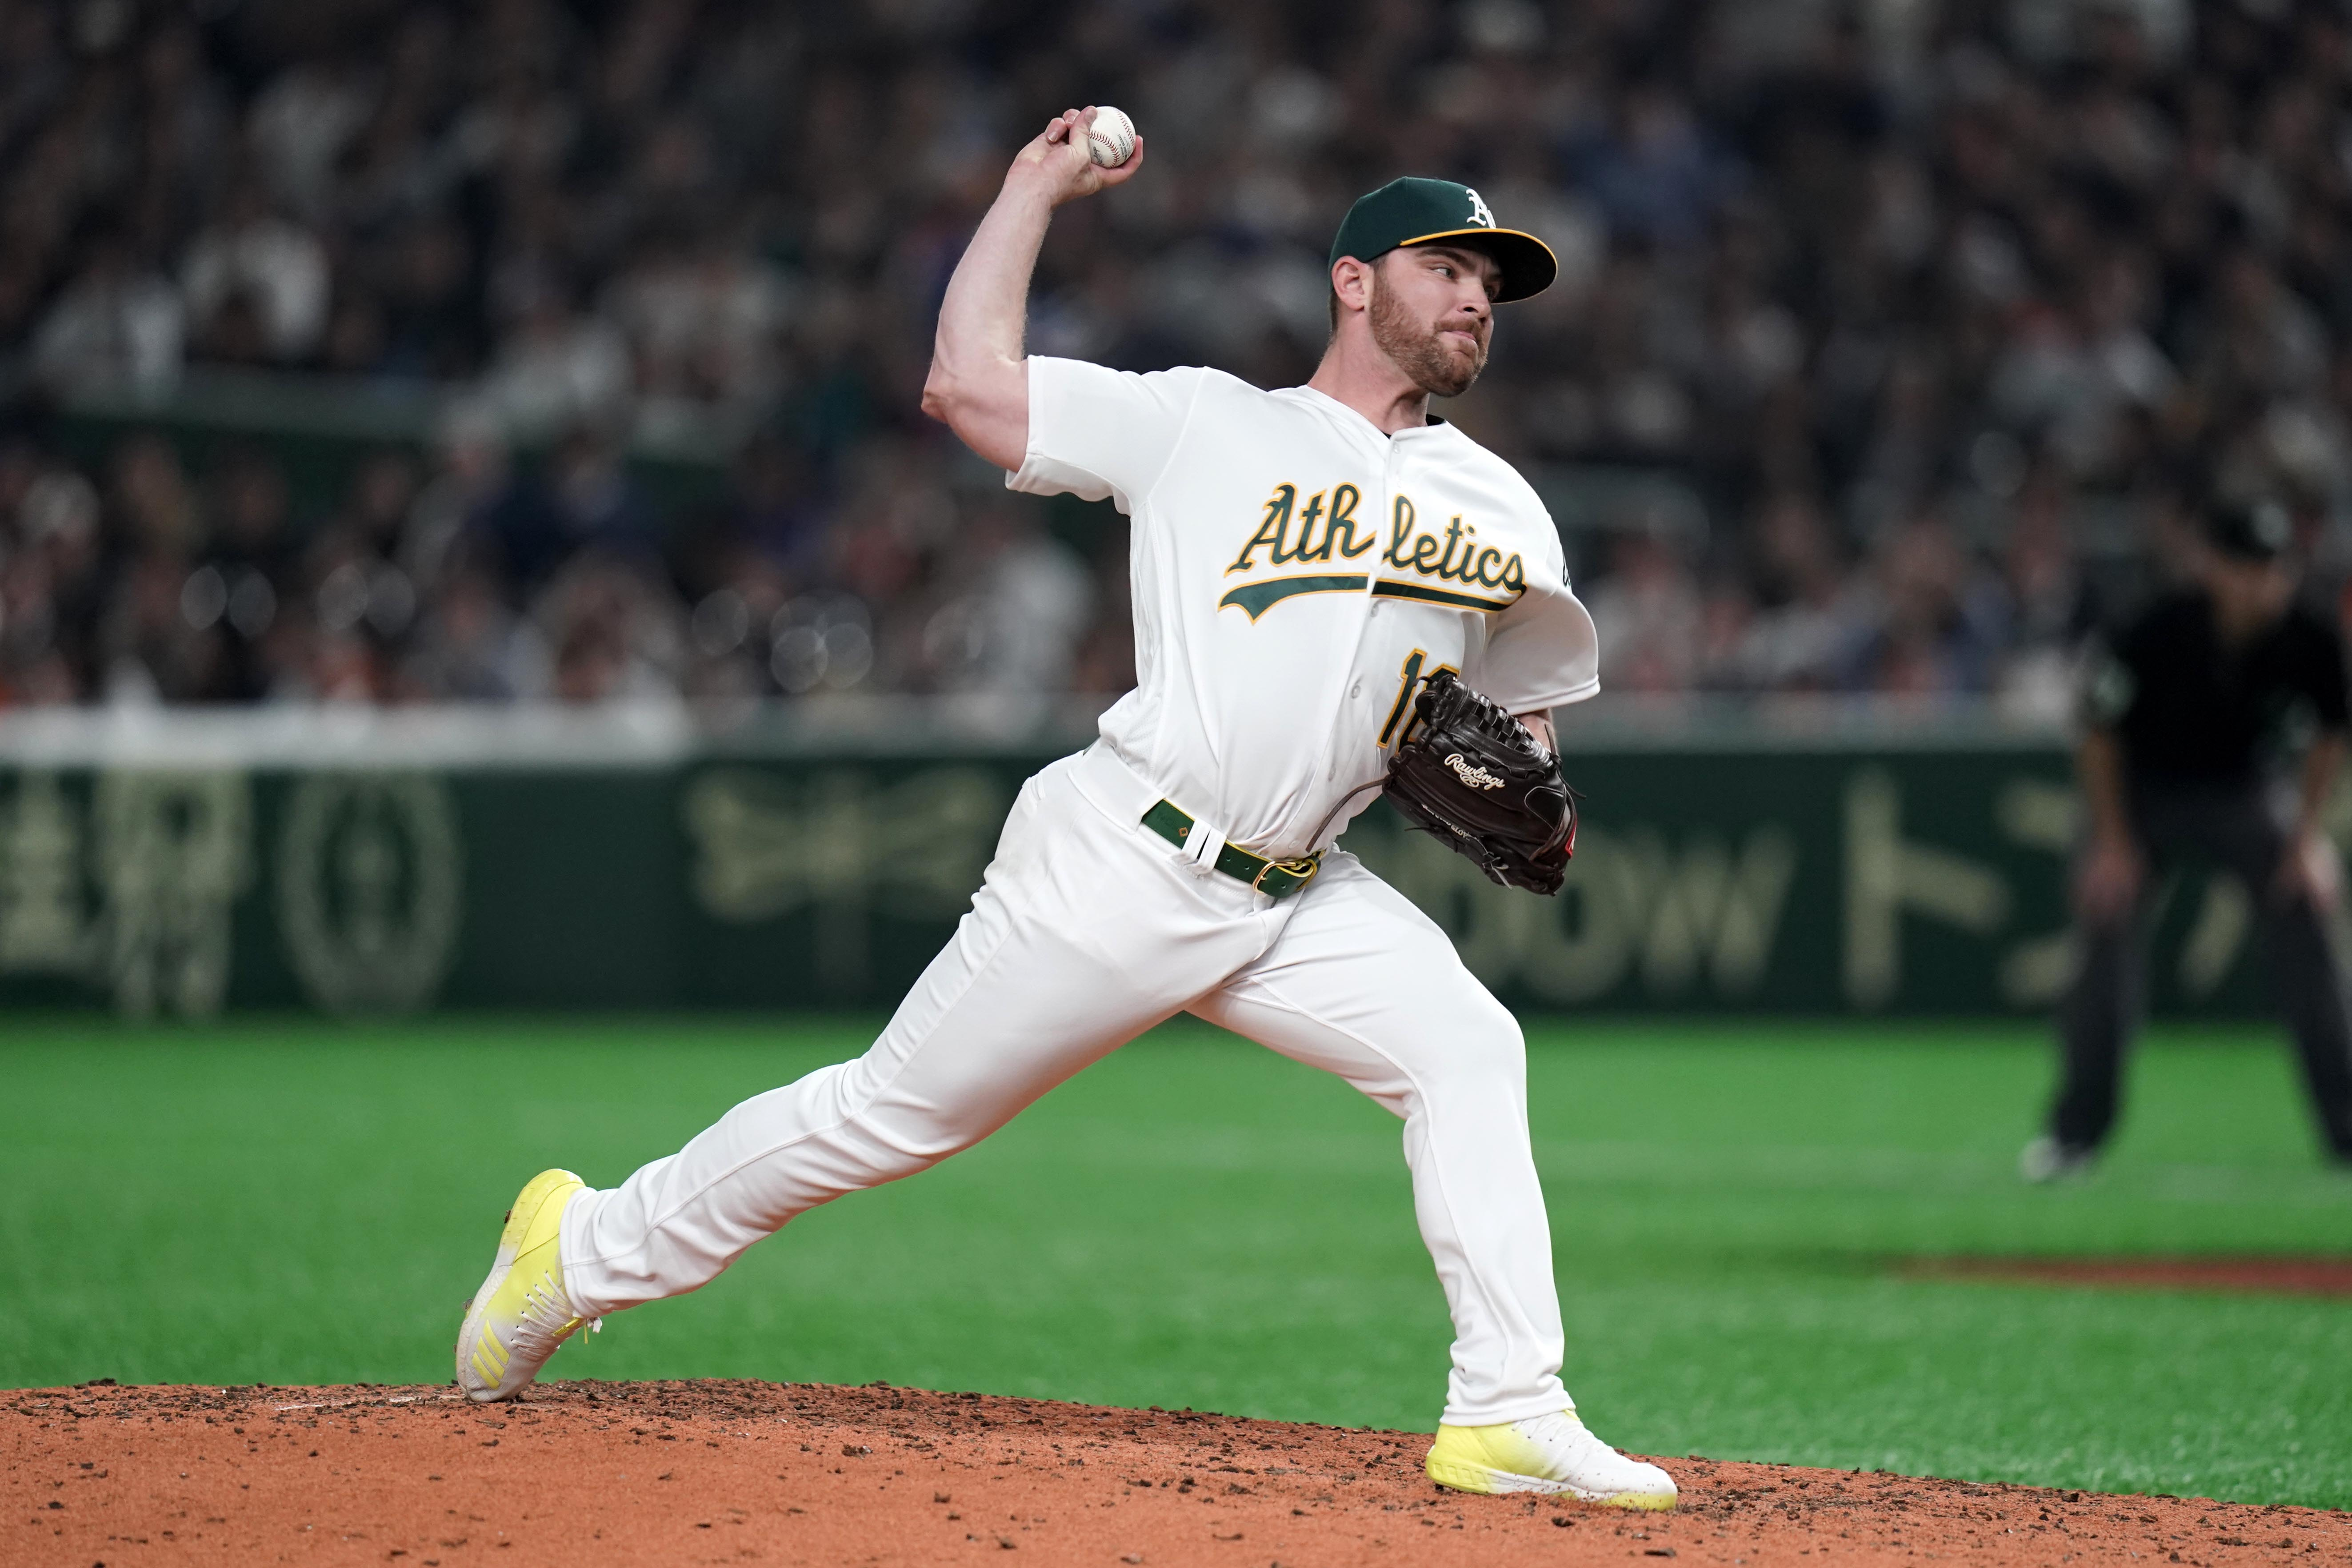 TOKYO, JAPAN - MARCH 20: Pitcher Liam Hendriks #16 of the Oakland Athletics throws in the 4th inning during the game between Seattle Mariners and Oakland Athletics at Tokyo Dome on March 20, 2019 in Tokyo, Japan. (Photo by Masterpress/Getty Images)